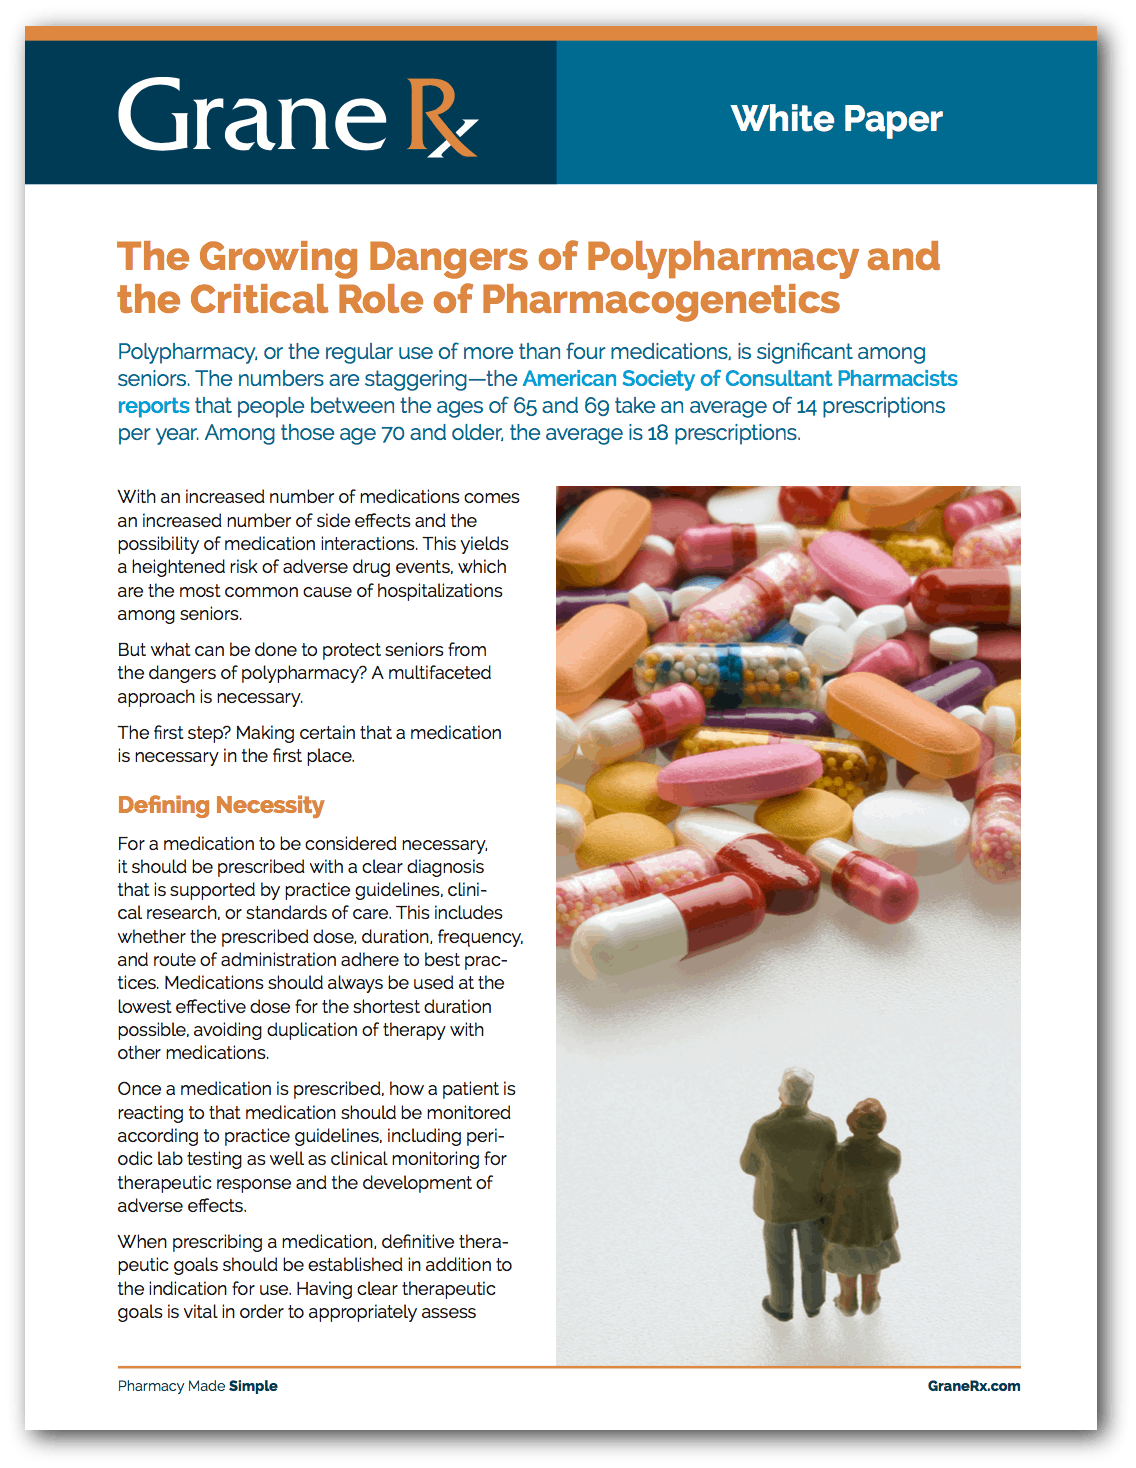 The Growing Danger of Polypharmacy and the Critical Role of Pharmacogenetics